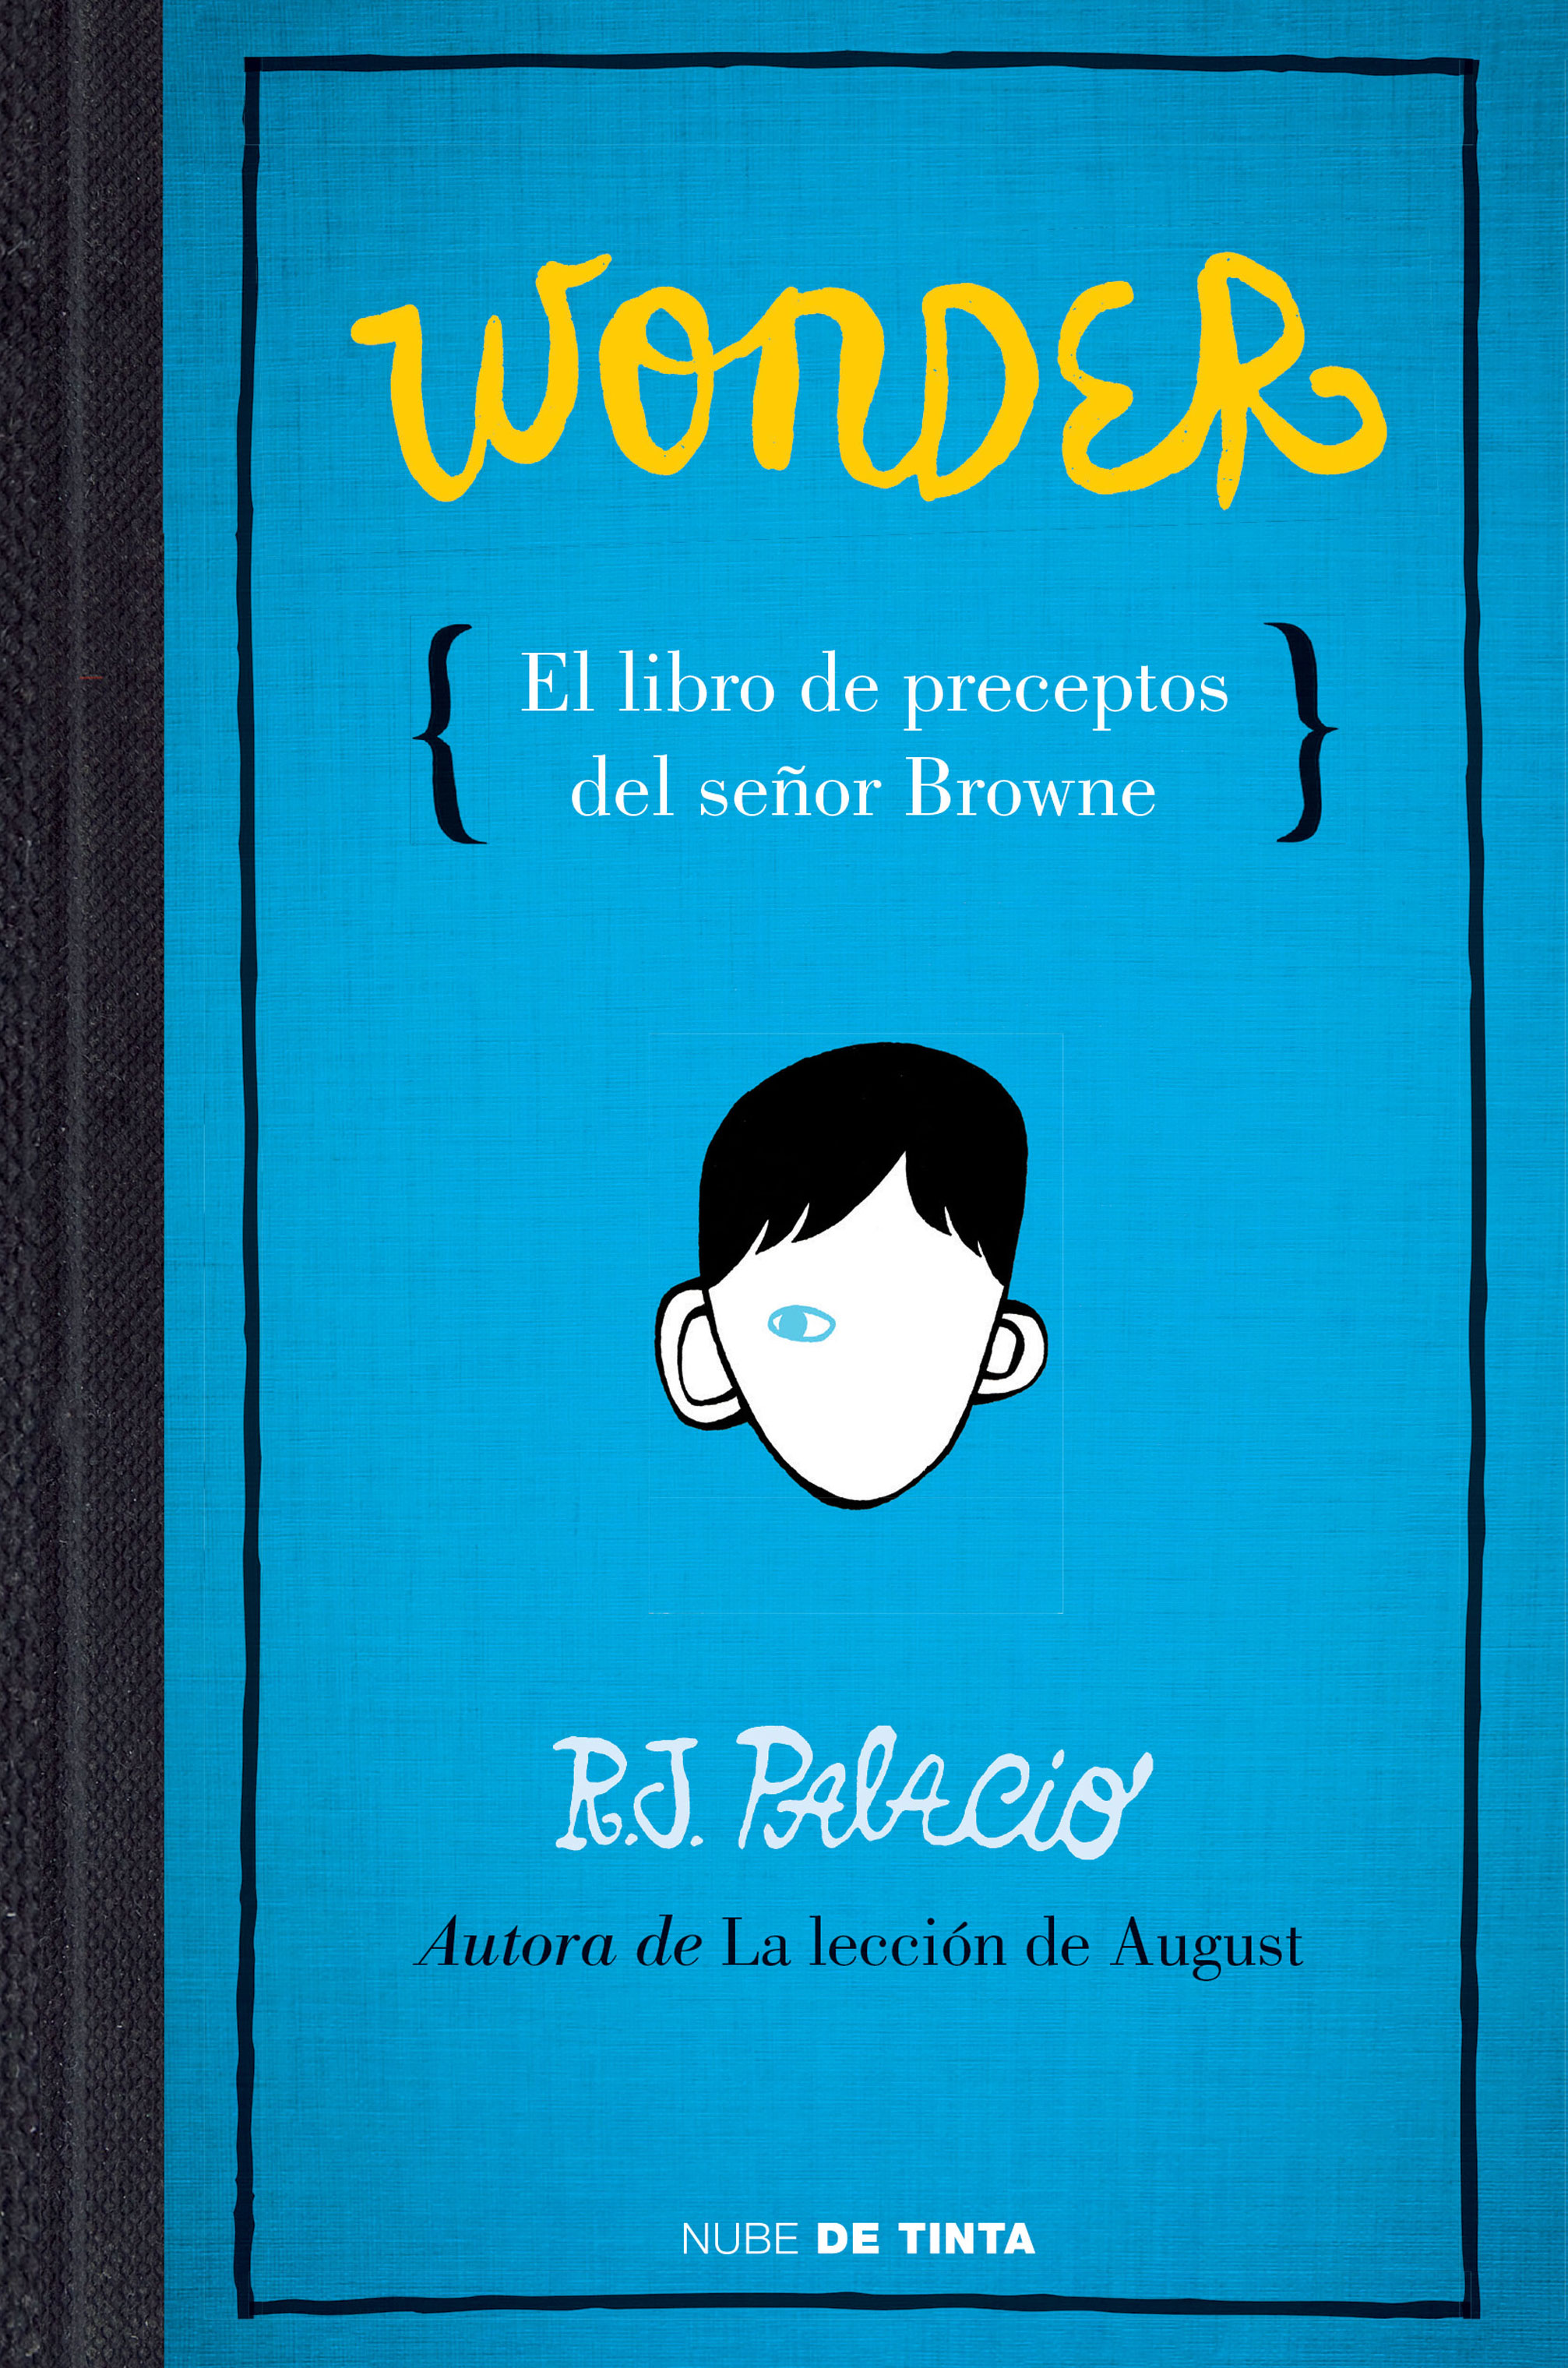 Wonder Libro Resumen La Leccion De August El Antídoto Contra El Bullying